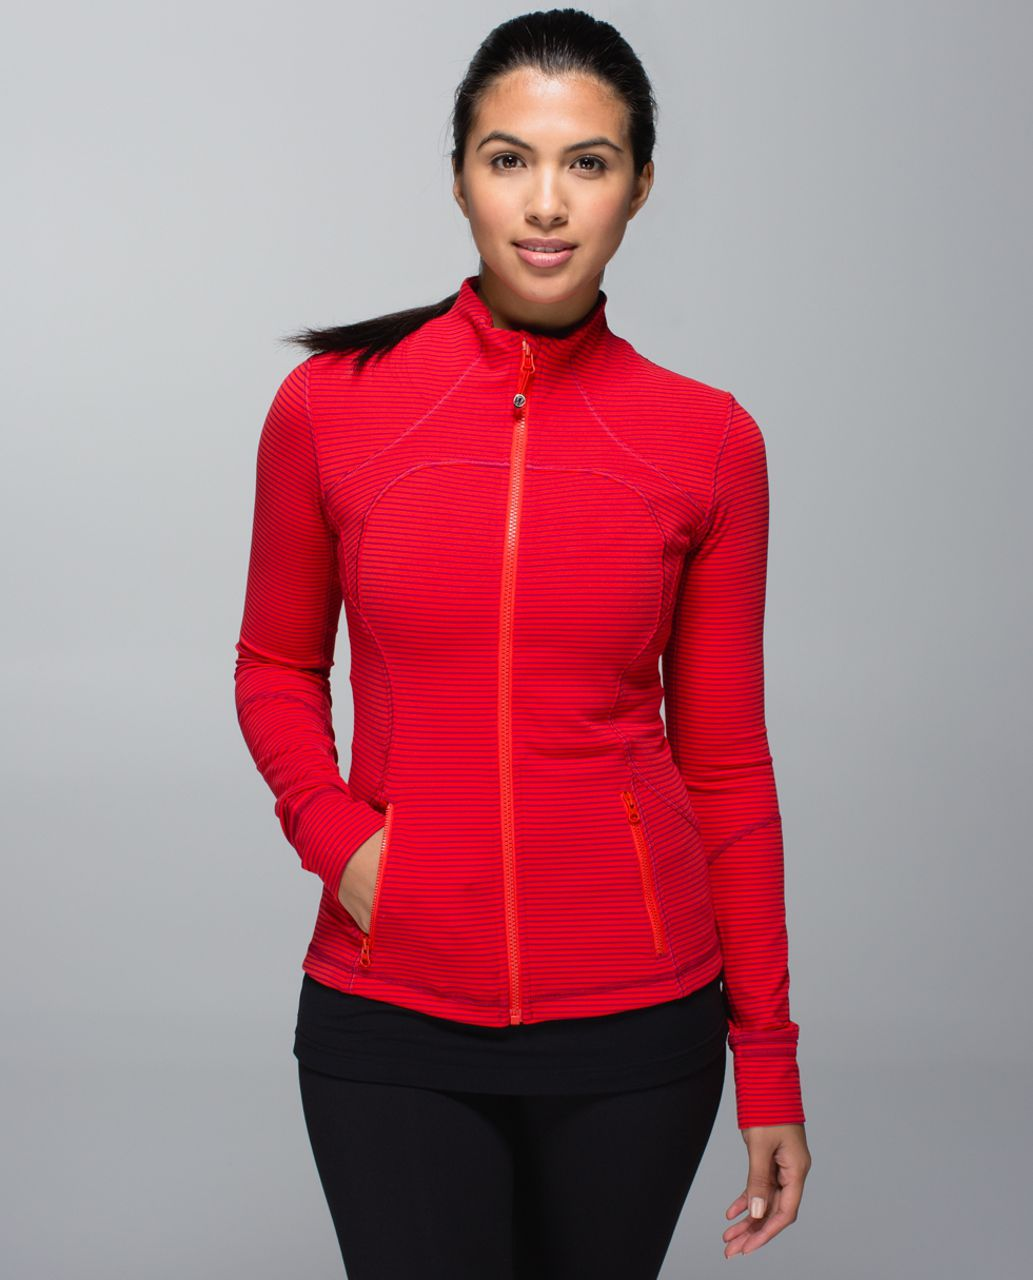 Lululemon Forme Jacket (Cuffins) - Hyper Stripe Bumble Berry Flaming Tomato